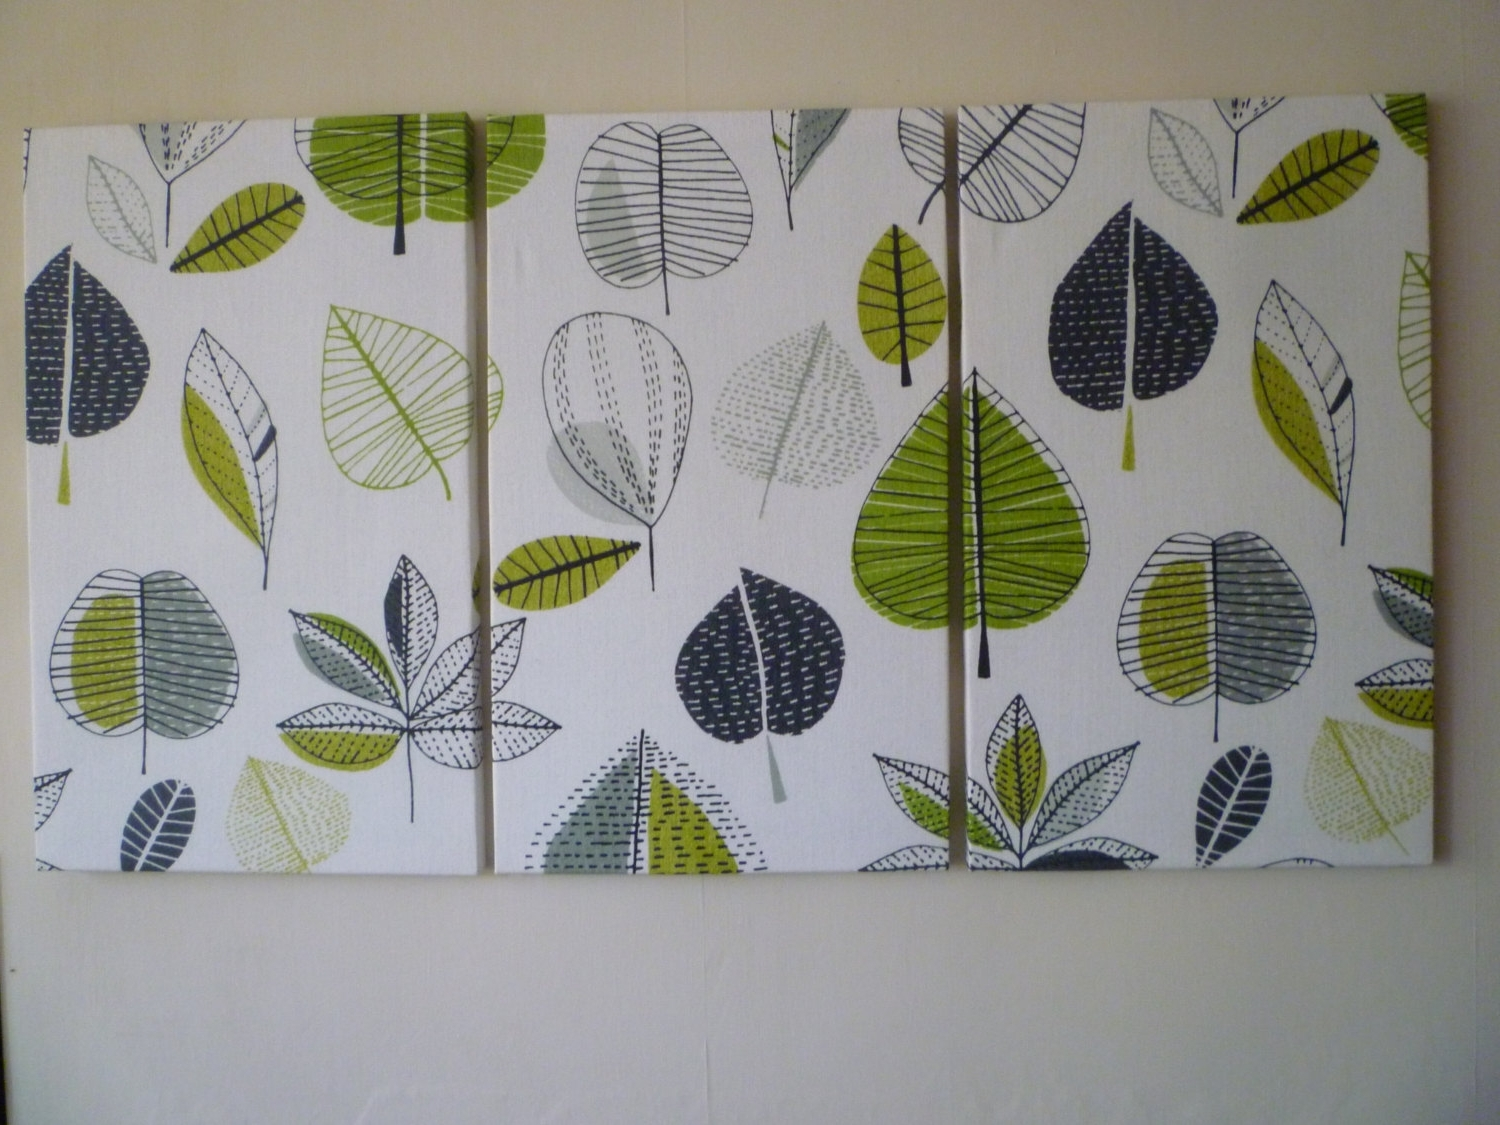 Widely Used Modern Fabric Wall Art Intended For Wall Art Designs: Fabric Wall Art Big Lime Green Fabric Wall Art (View 15 of 15)